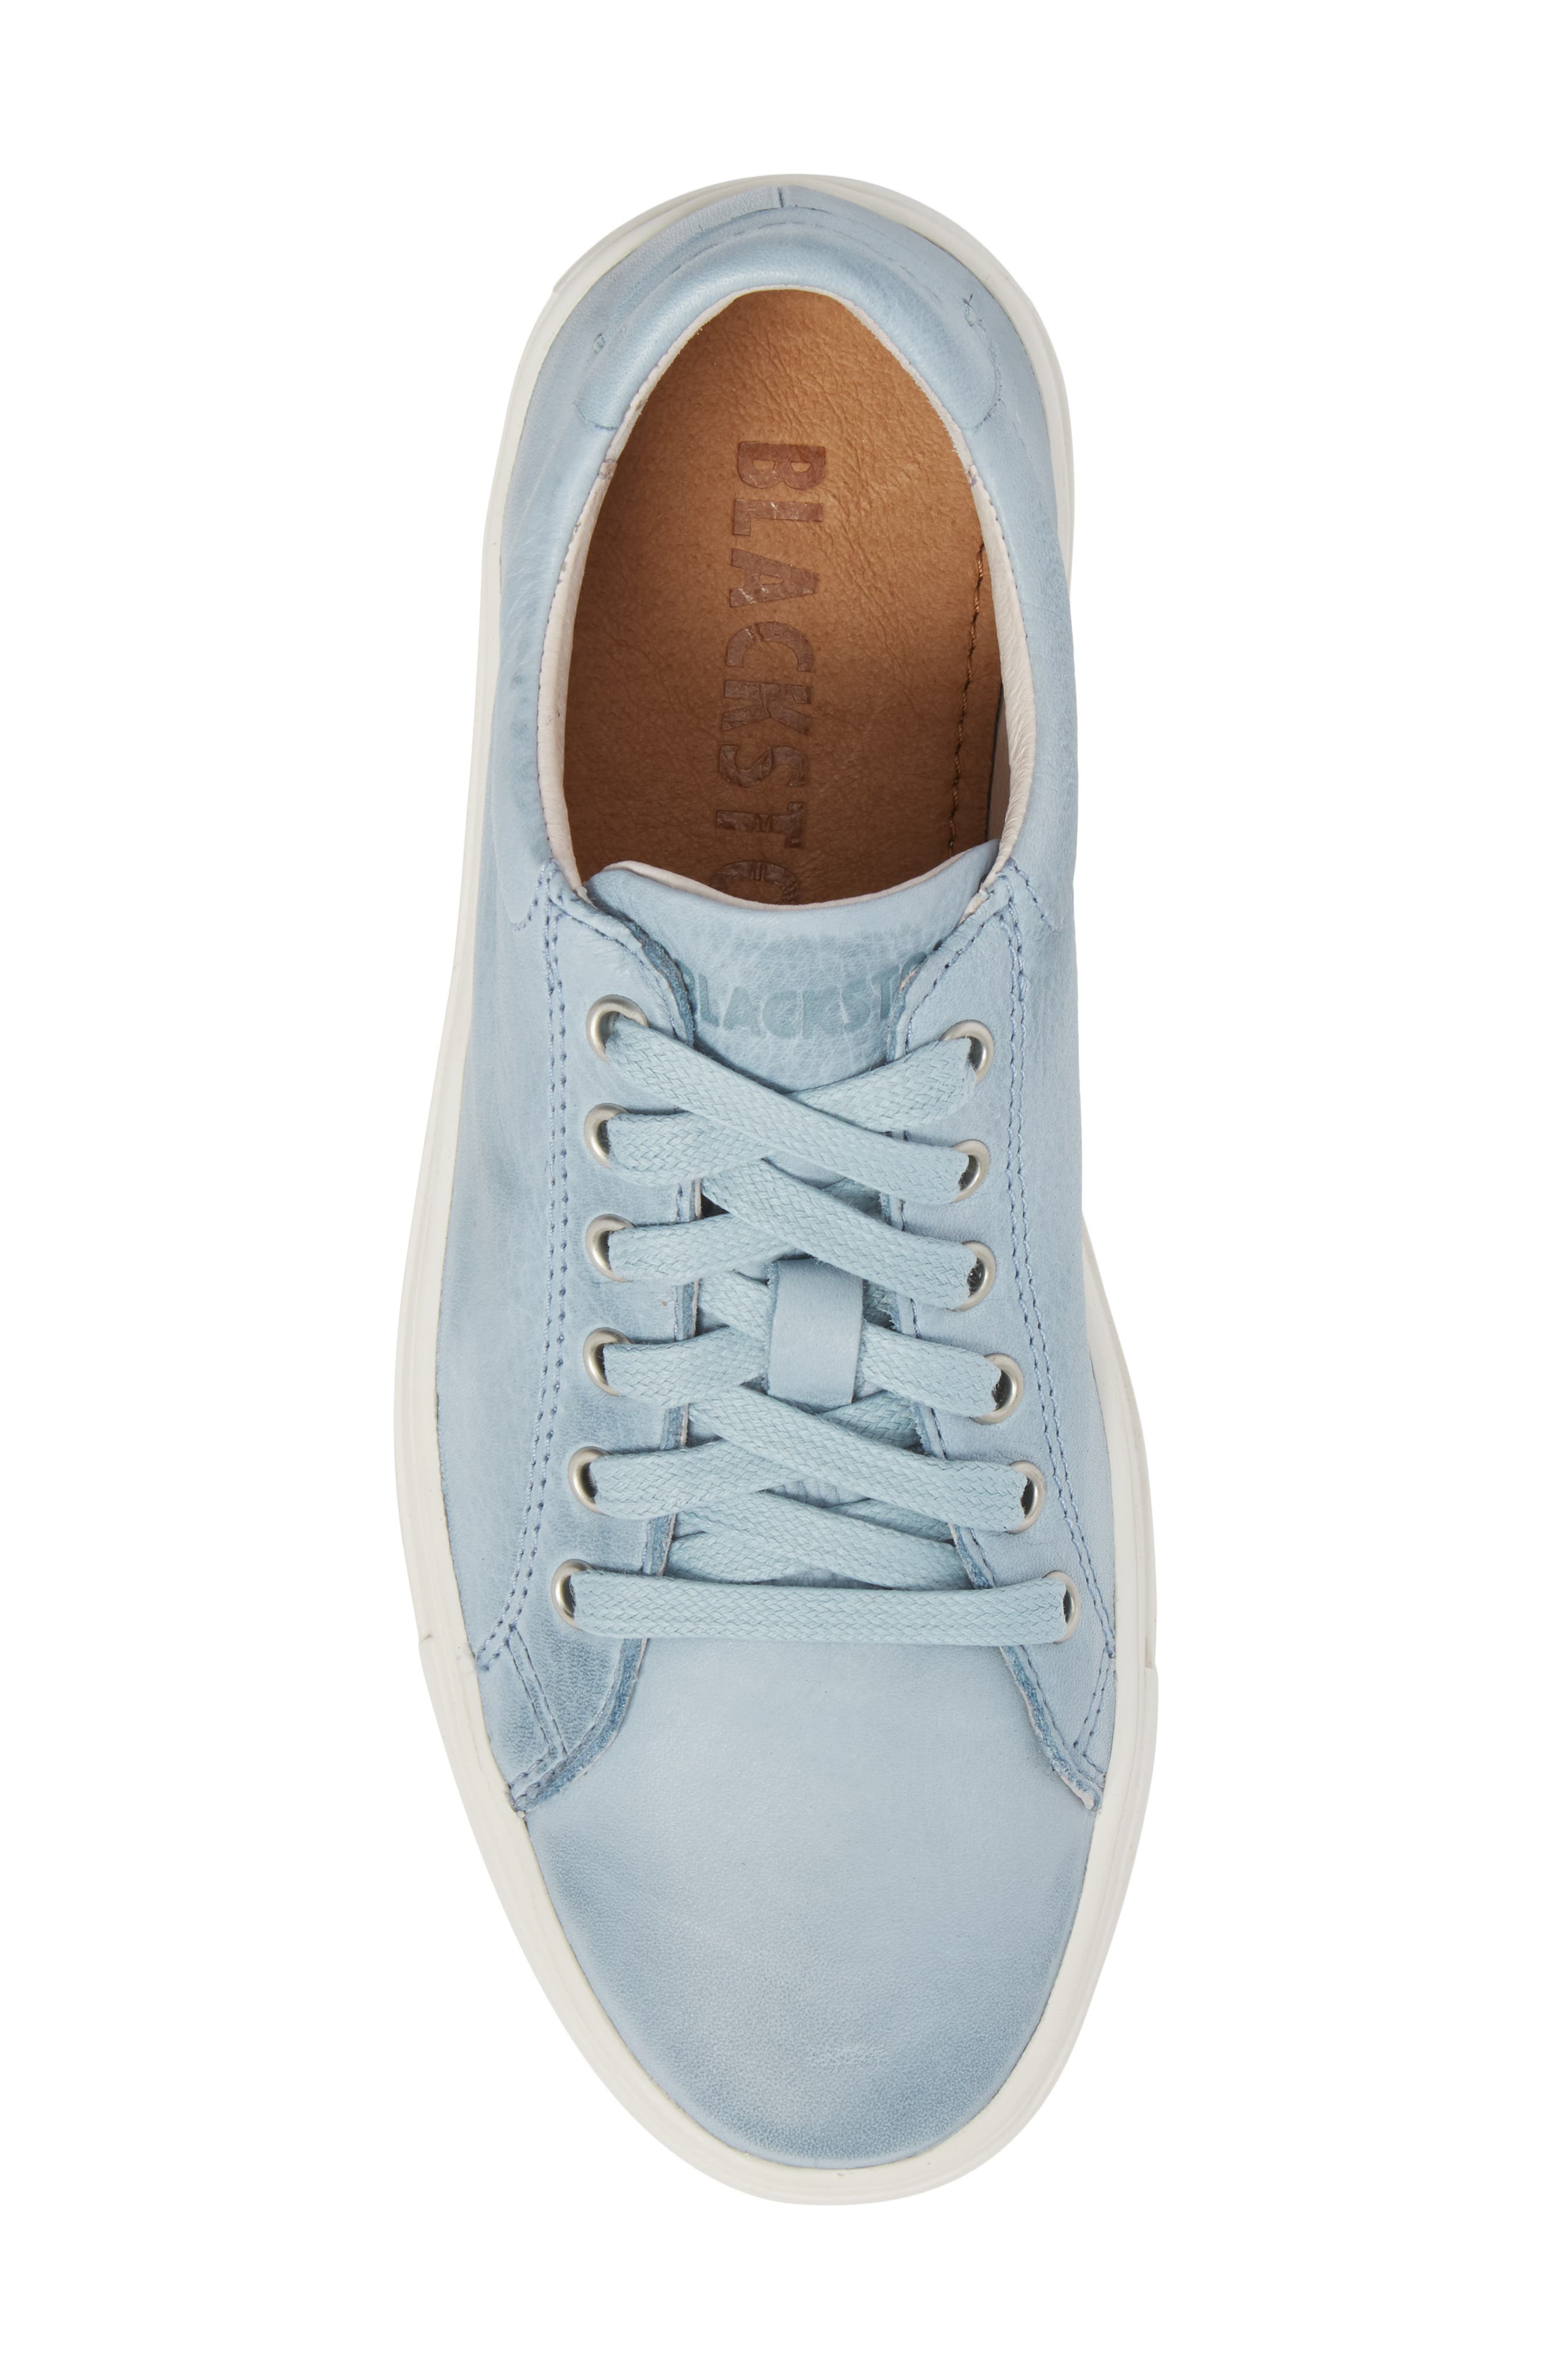 PL71 Low Top Sneaker,                             Alternate thumbnail 5, color,                             Sky Blue Leather